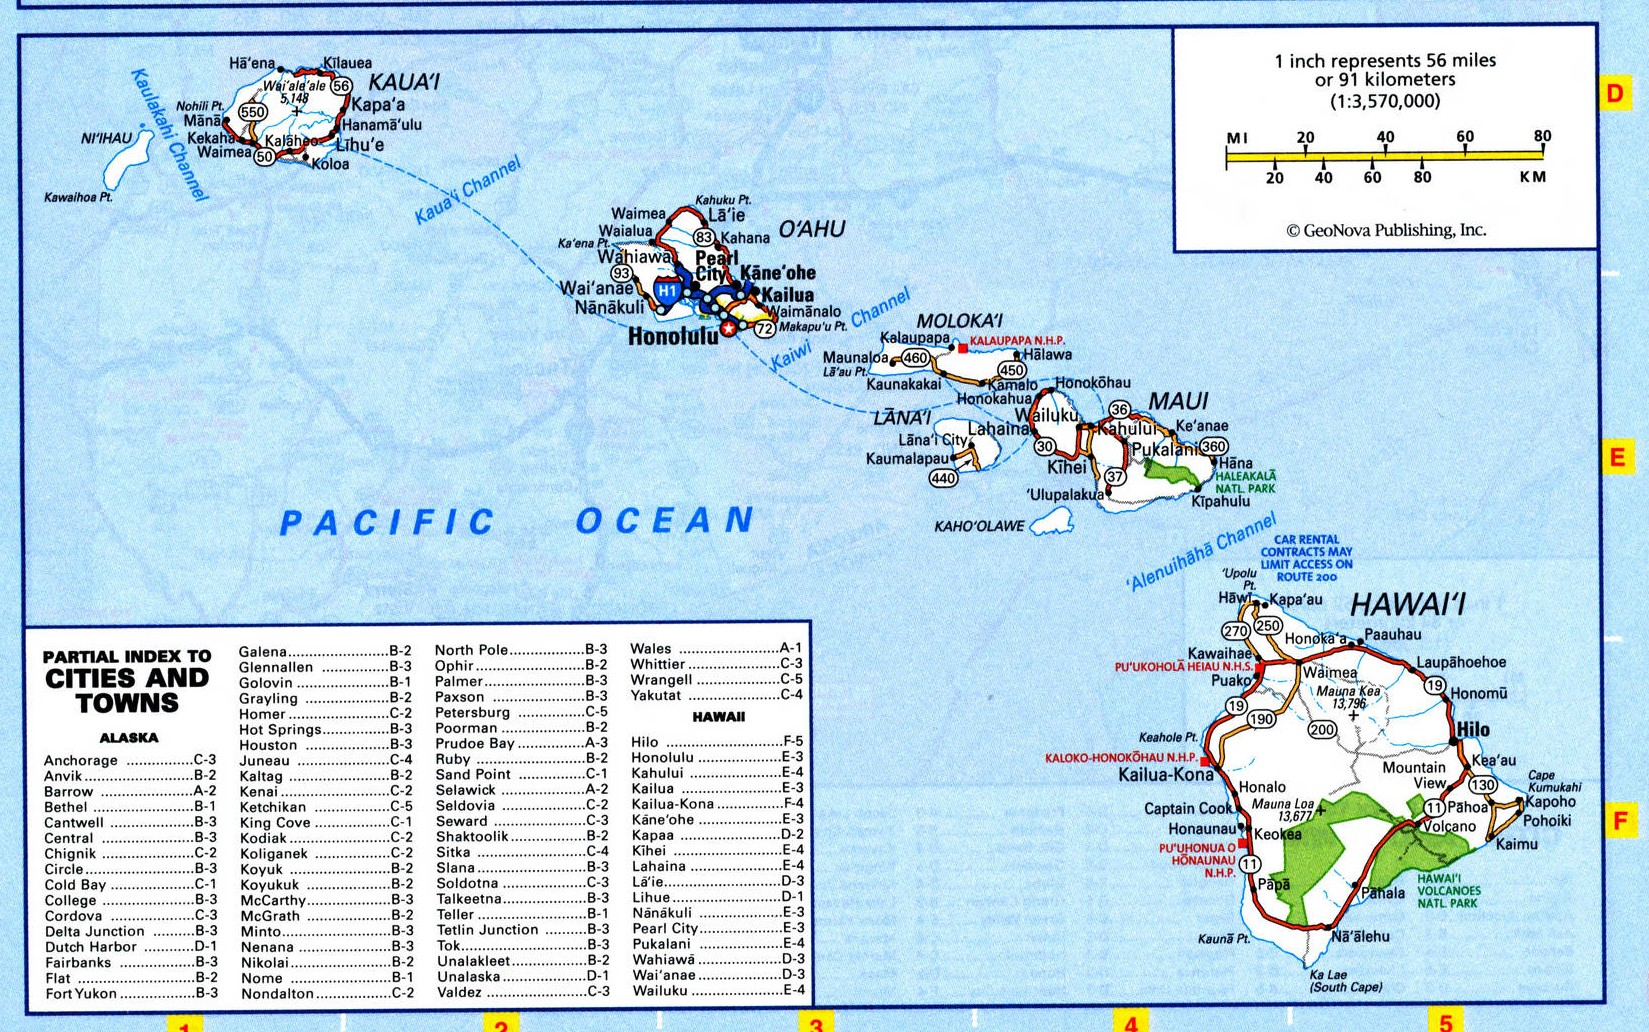 Map of Hawaii state - national parks, reserves, recreation areas